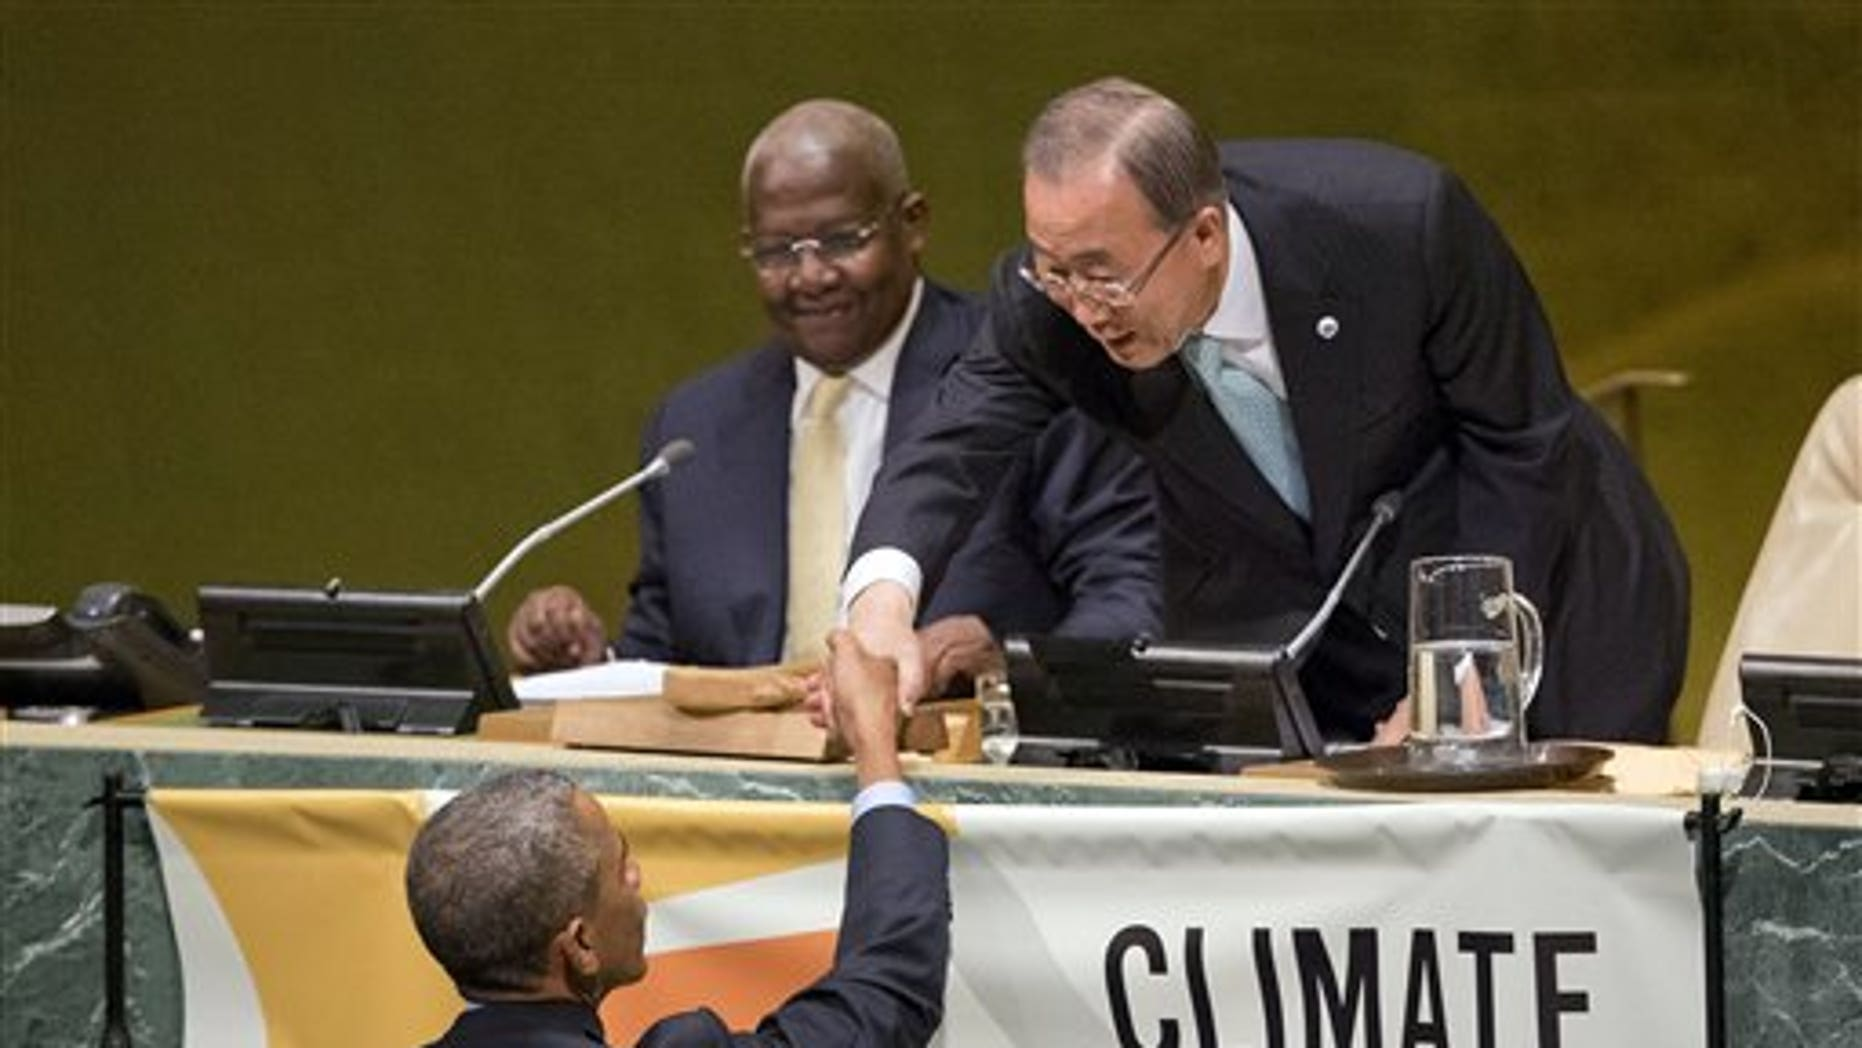 US President Barack Obama, left, is greeted by United Nations Secretary-General Ban Ki-moon, right, before speaking at the Climate Summit 2014 at the UN General Assembly Hall, Tuesday, Sept. 23, 2014. Obama is in New York for three days of talks with foreign leaders at the annual United Nations General Assembly. (AP Photo/Pablo Martinez Monsivais)